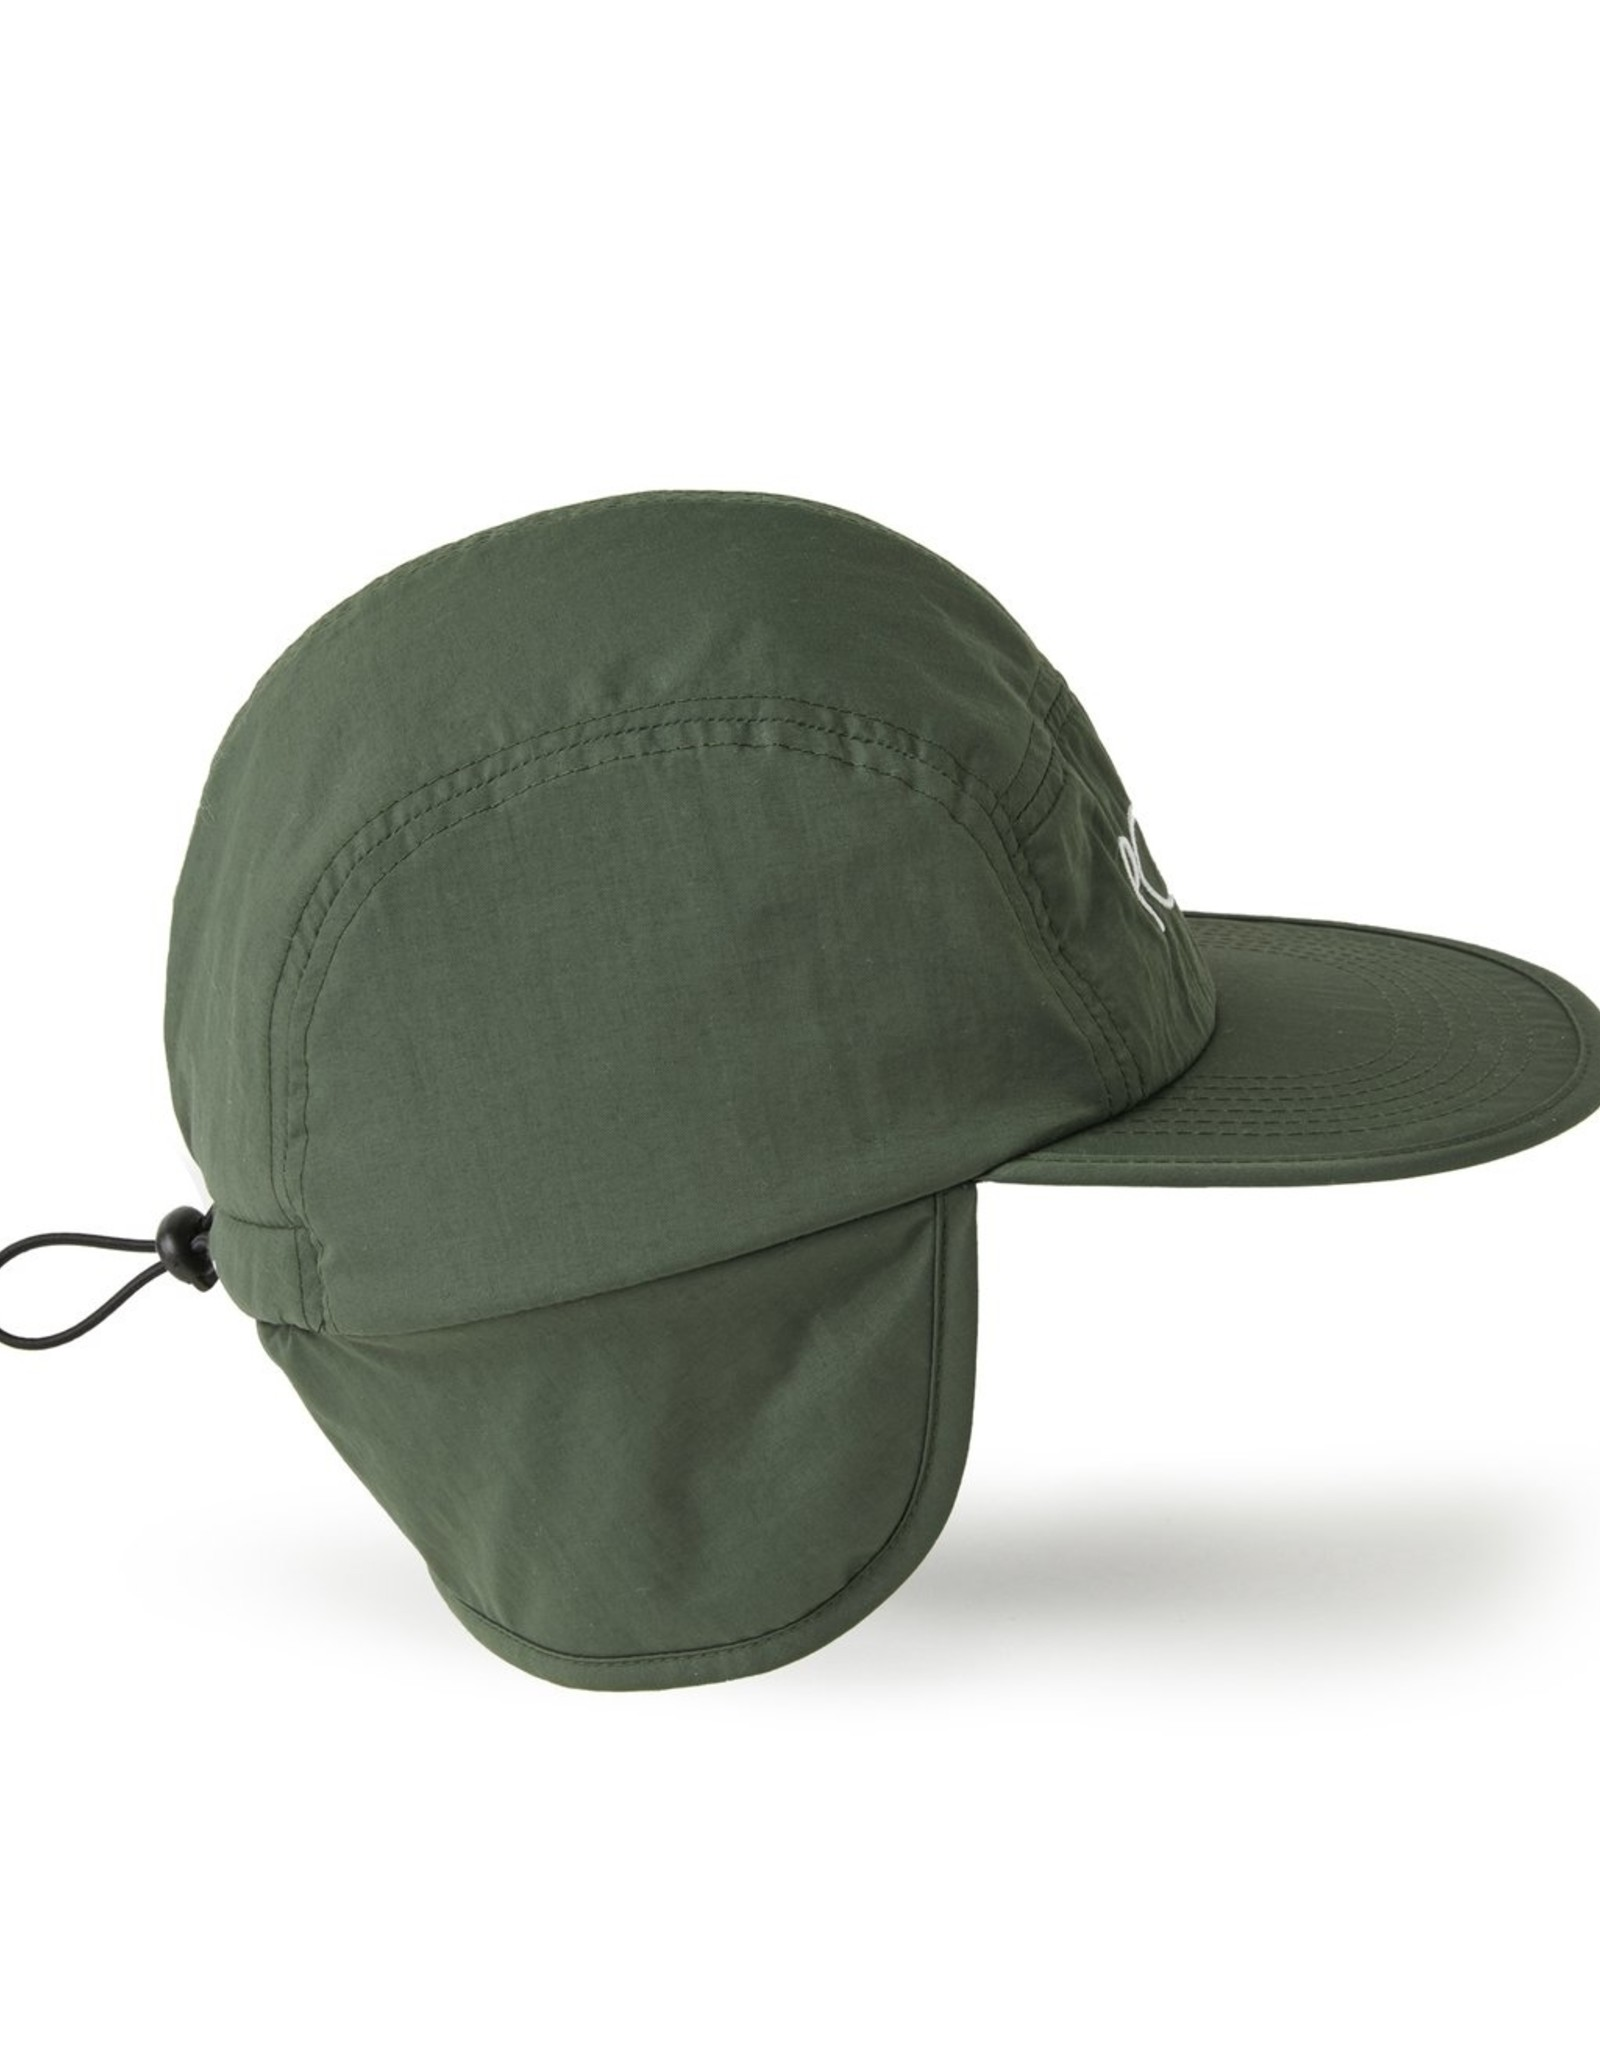 POLAR FLAP CAP - ARMY GREEN